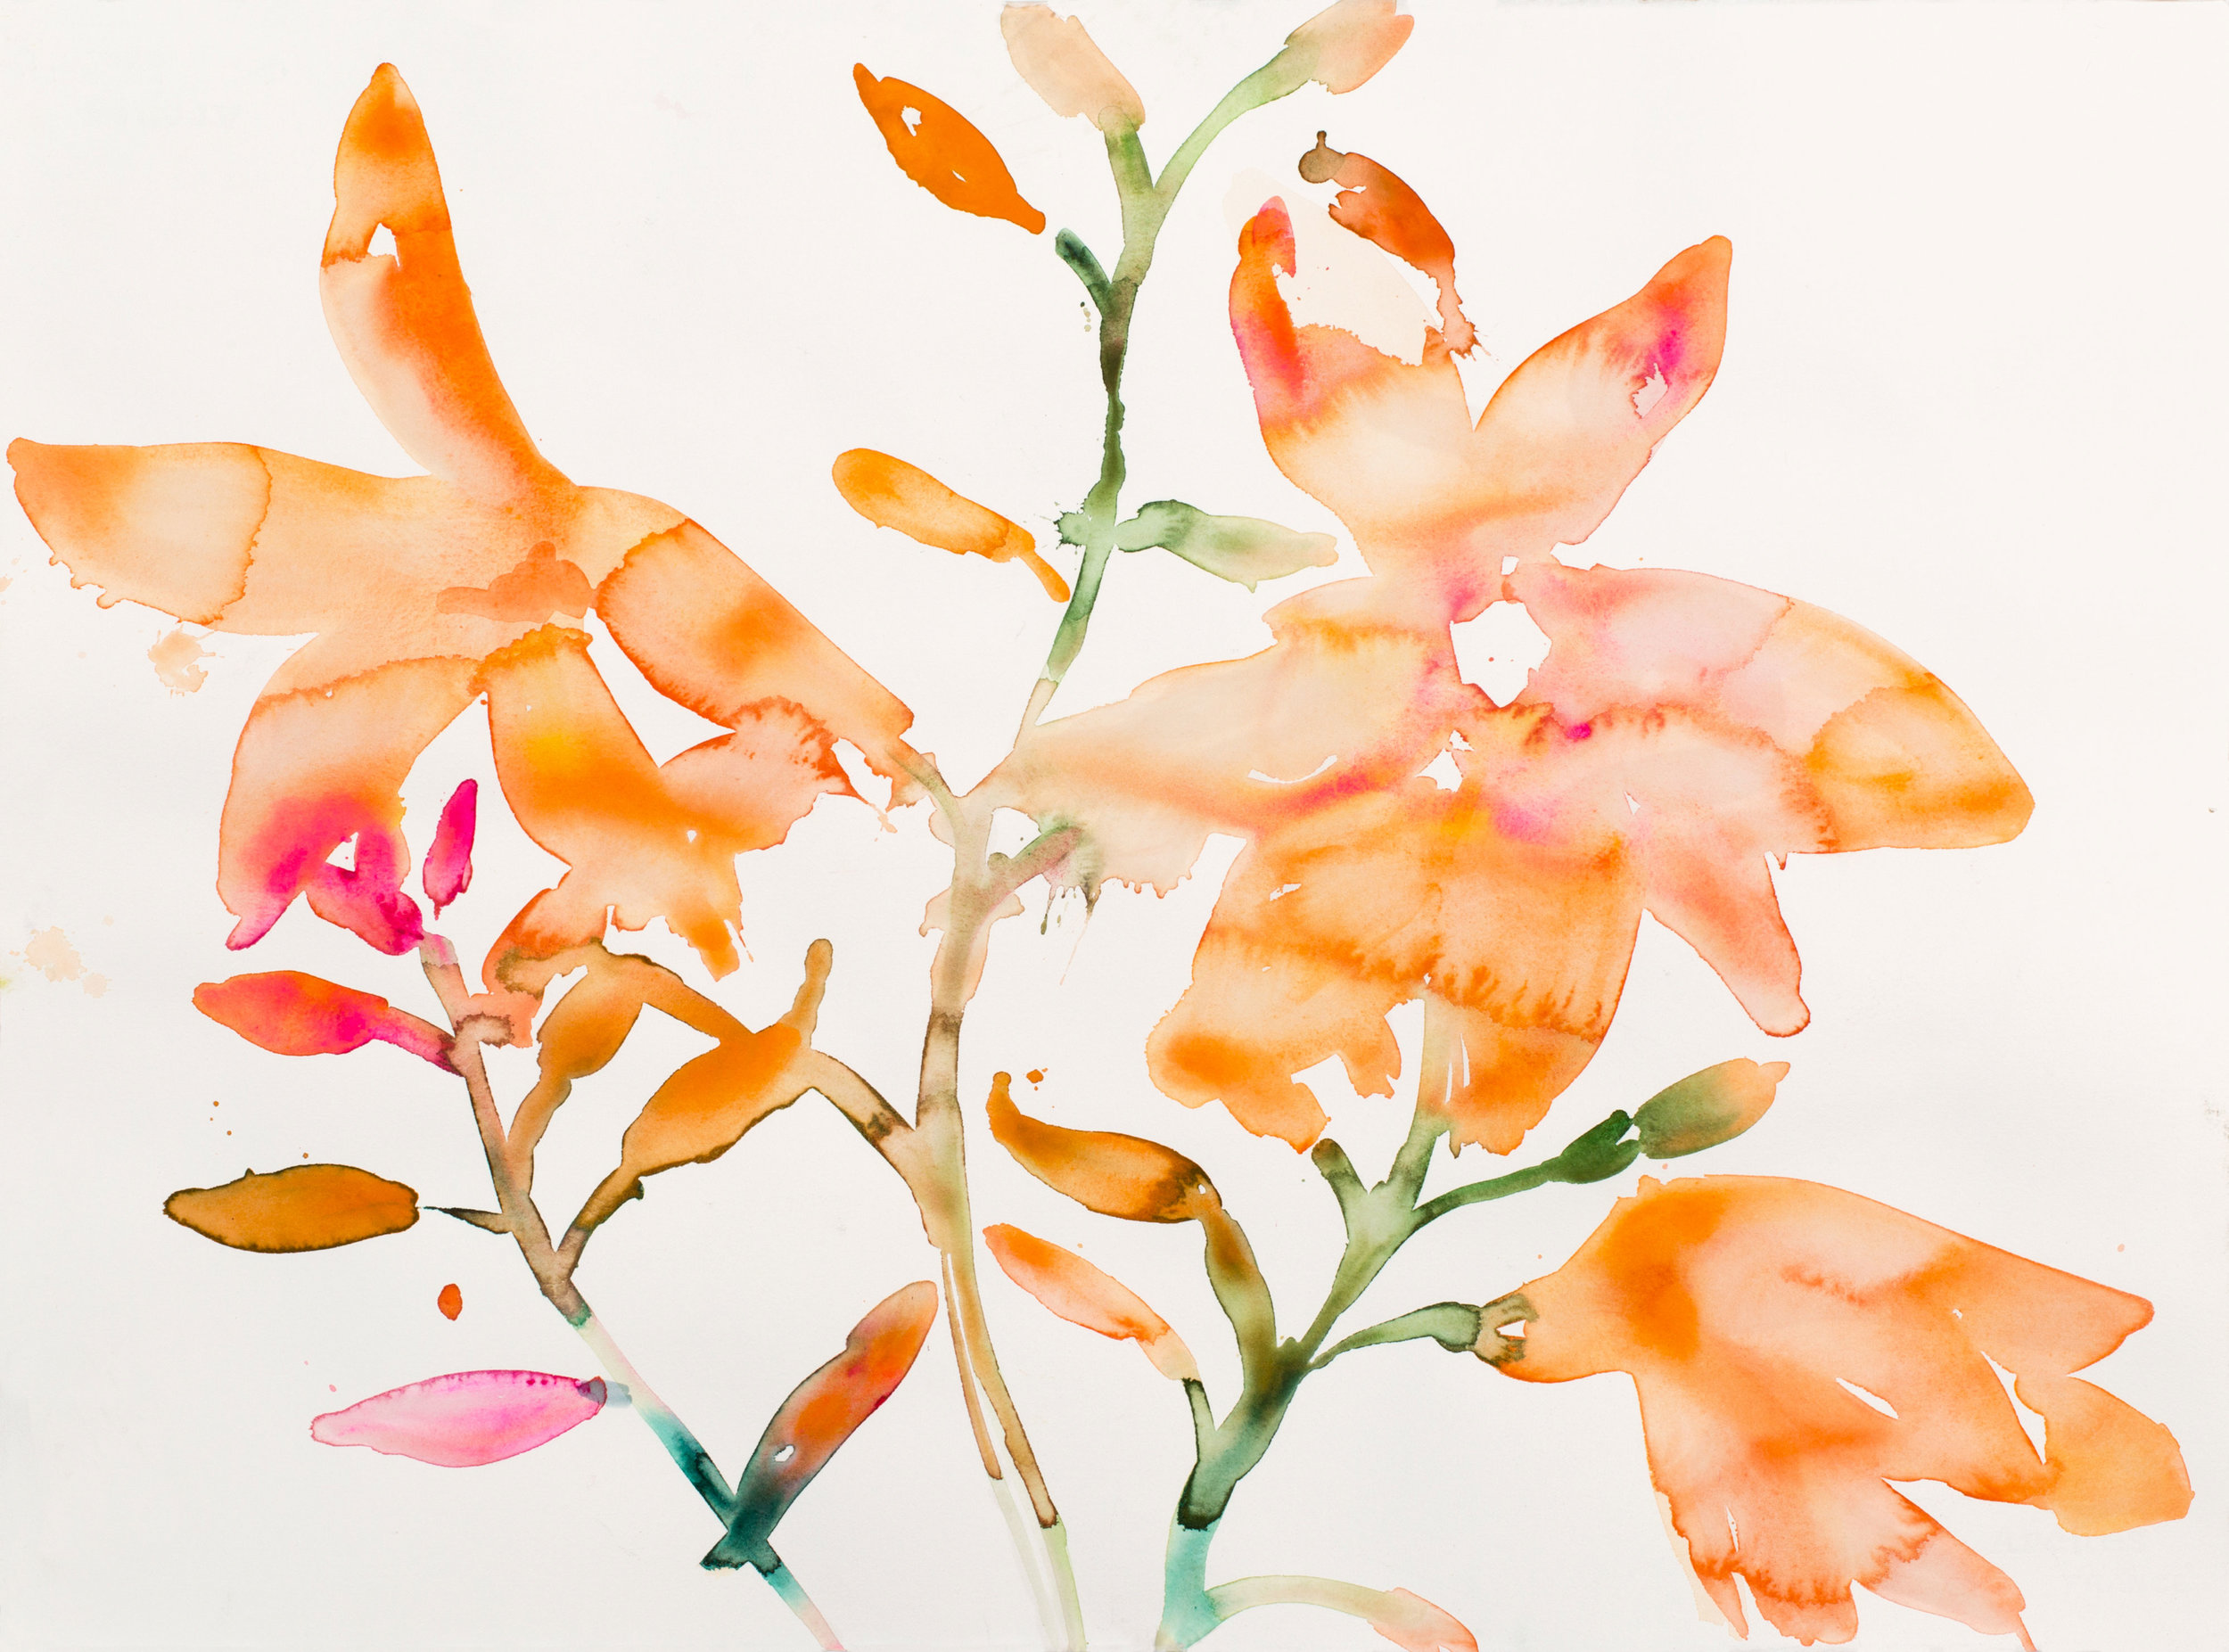 "KIM MCCARTY. ""ORANGE FLOWERS"" (2017). WATERCOLOR ON PAPER. 22 X 30 INCHES. COURTESY OF THE ARTIST AND MORGAN LEHMAN GALLERY, NEW YORK."